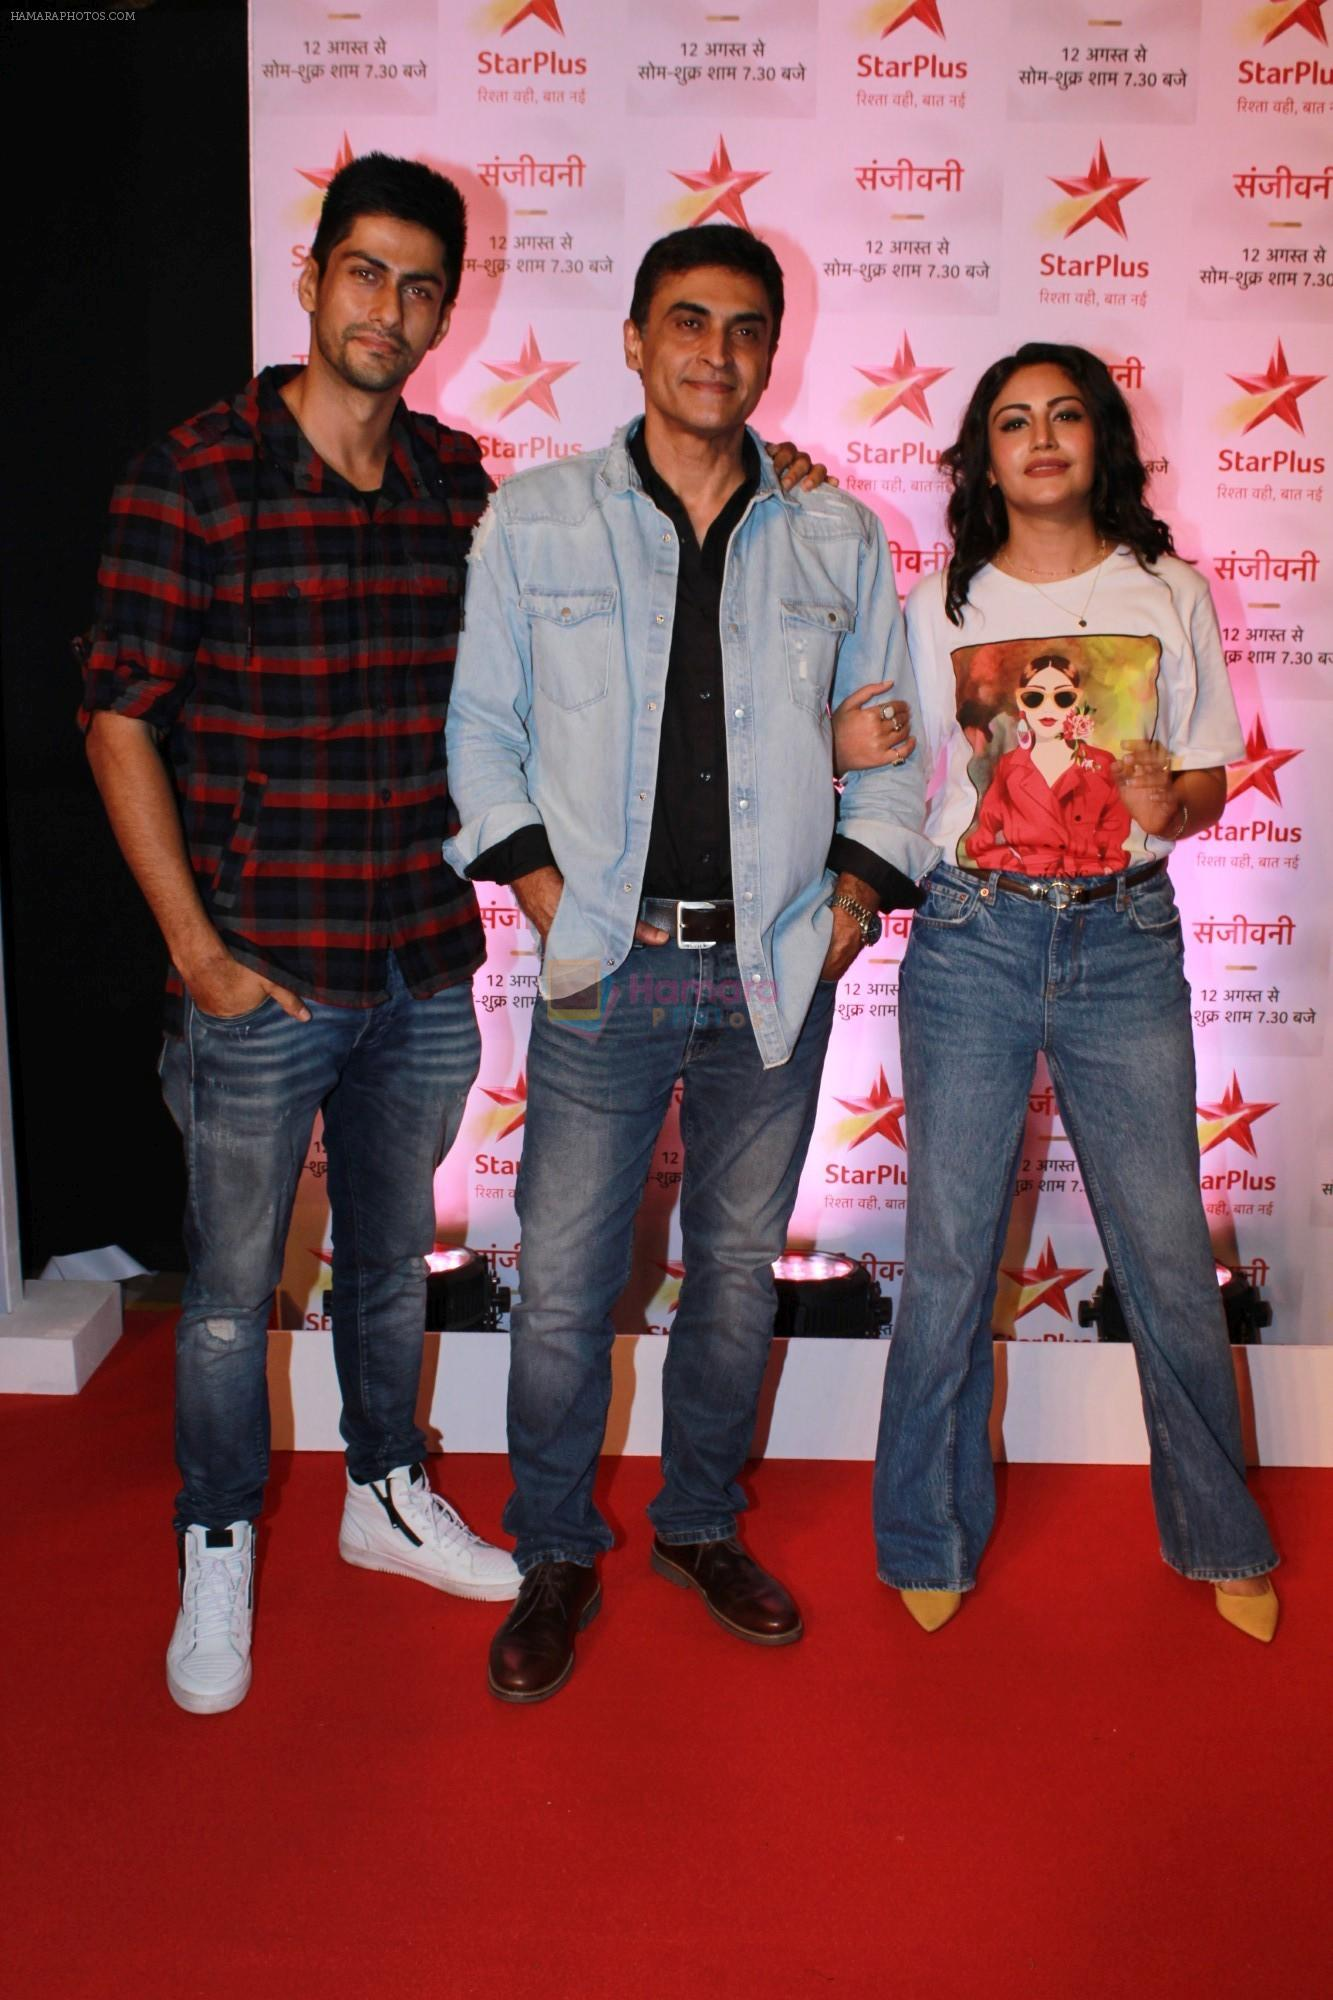 Surbhi Chandna, Mohnish Bahl, Namit Khanna at the Red Carpet of Star Plus serial Sanjivani 2 on 31st July 2019